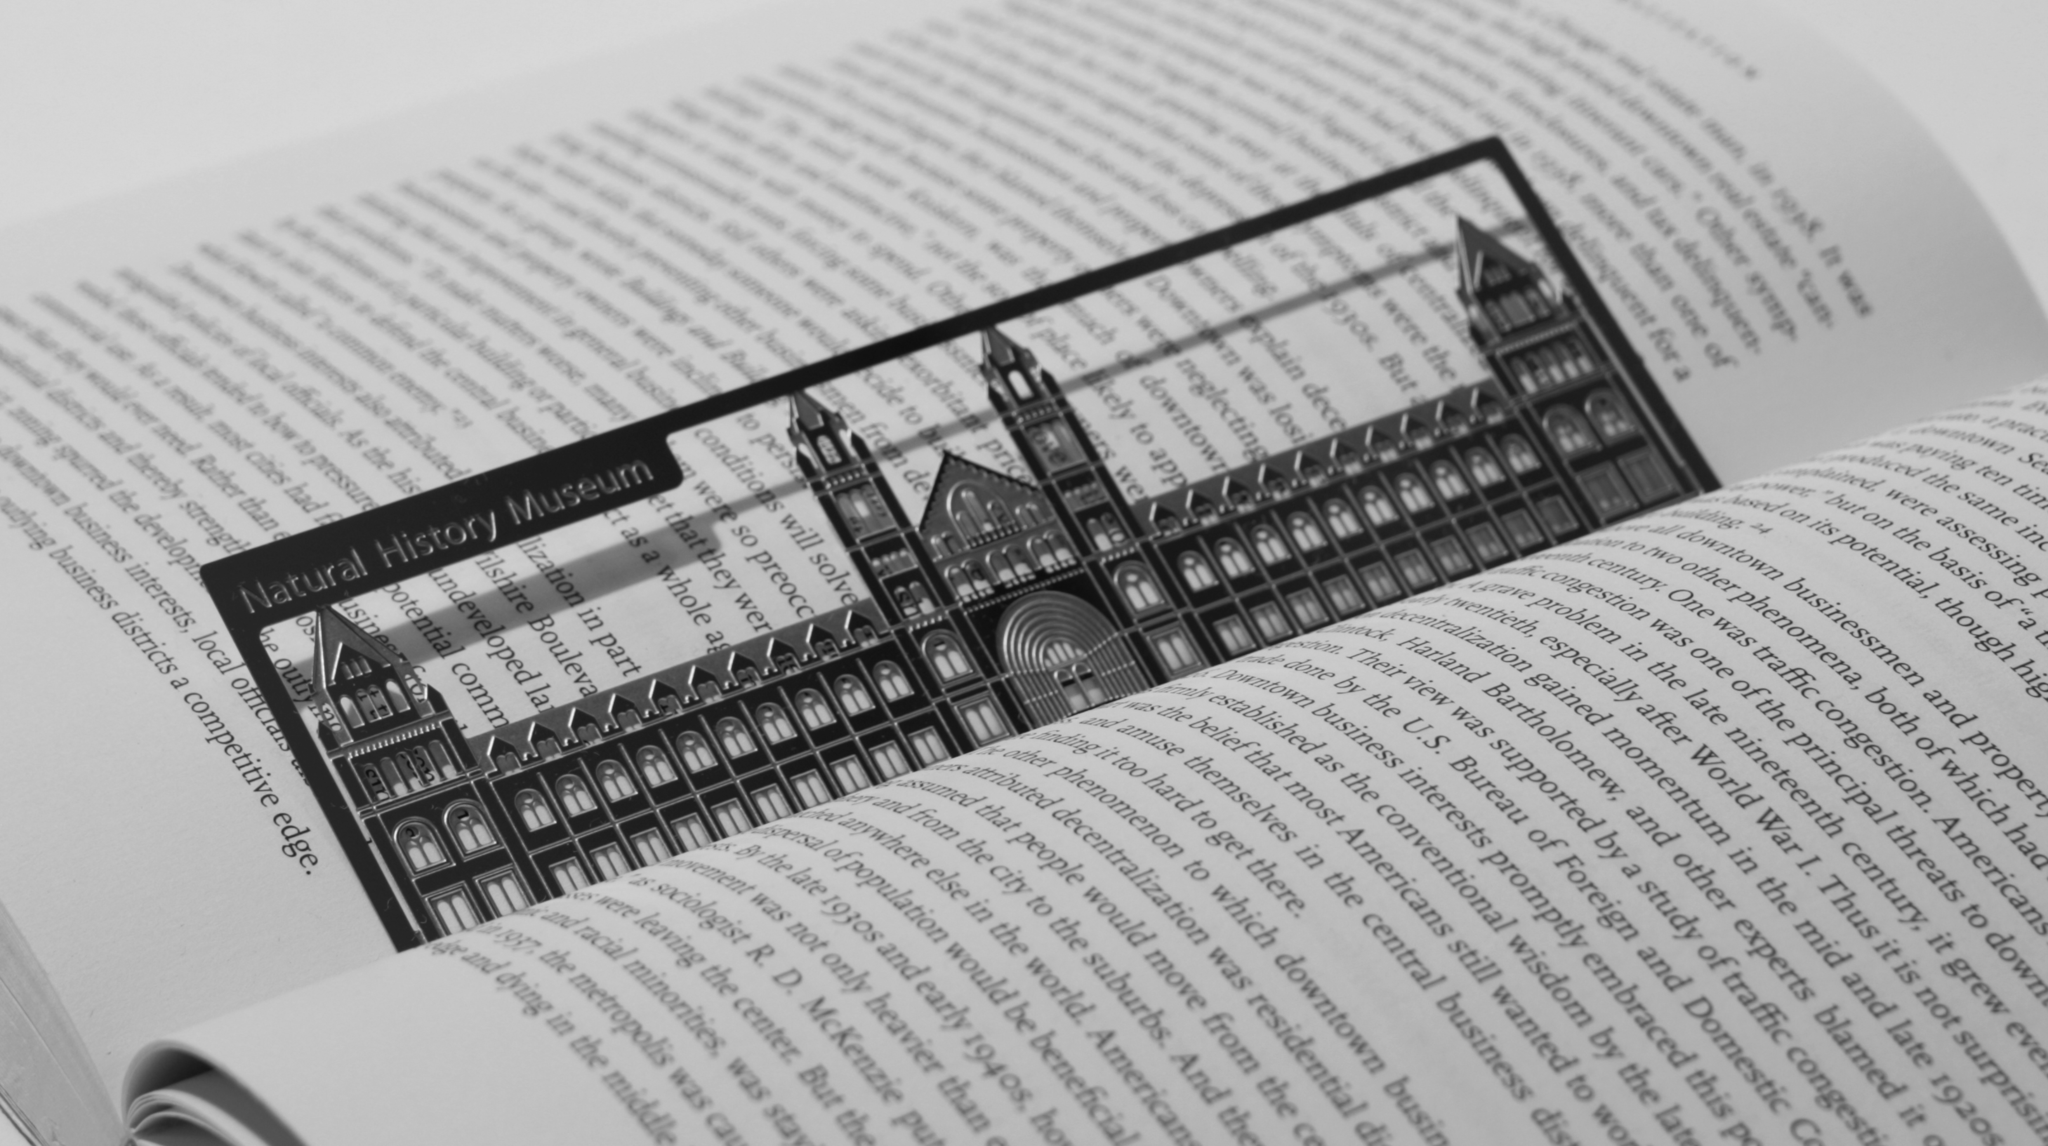 Natural History Museum - Stainless Steel Bookmark